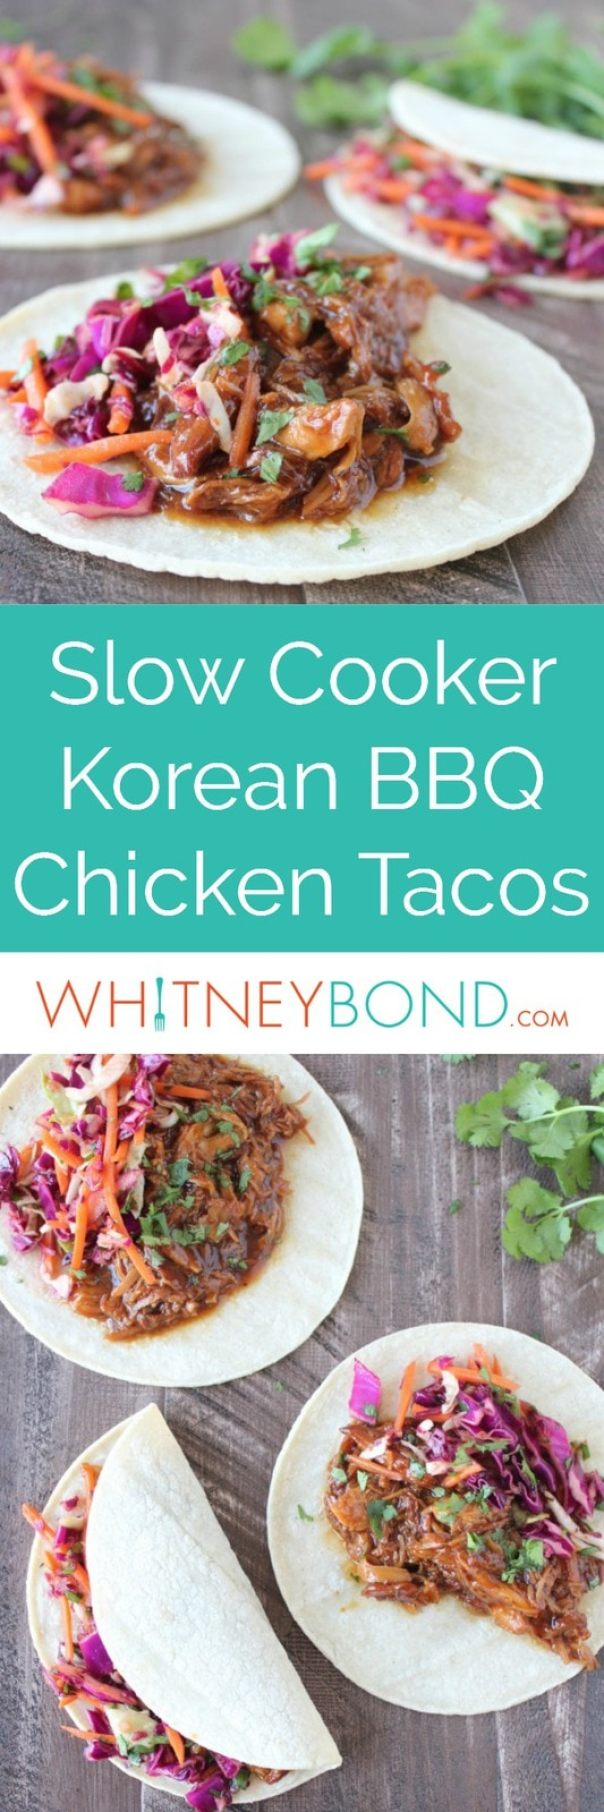 Slow Cooker Honey BBQ Chicken Tacos make an appearance at our house on the regular, Taco Tuesday or not! It's one of those easy slow cooker recipes that can be heated up easily, requires very little cleanup, and is great for both kids and adults.